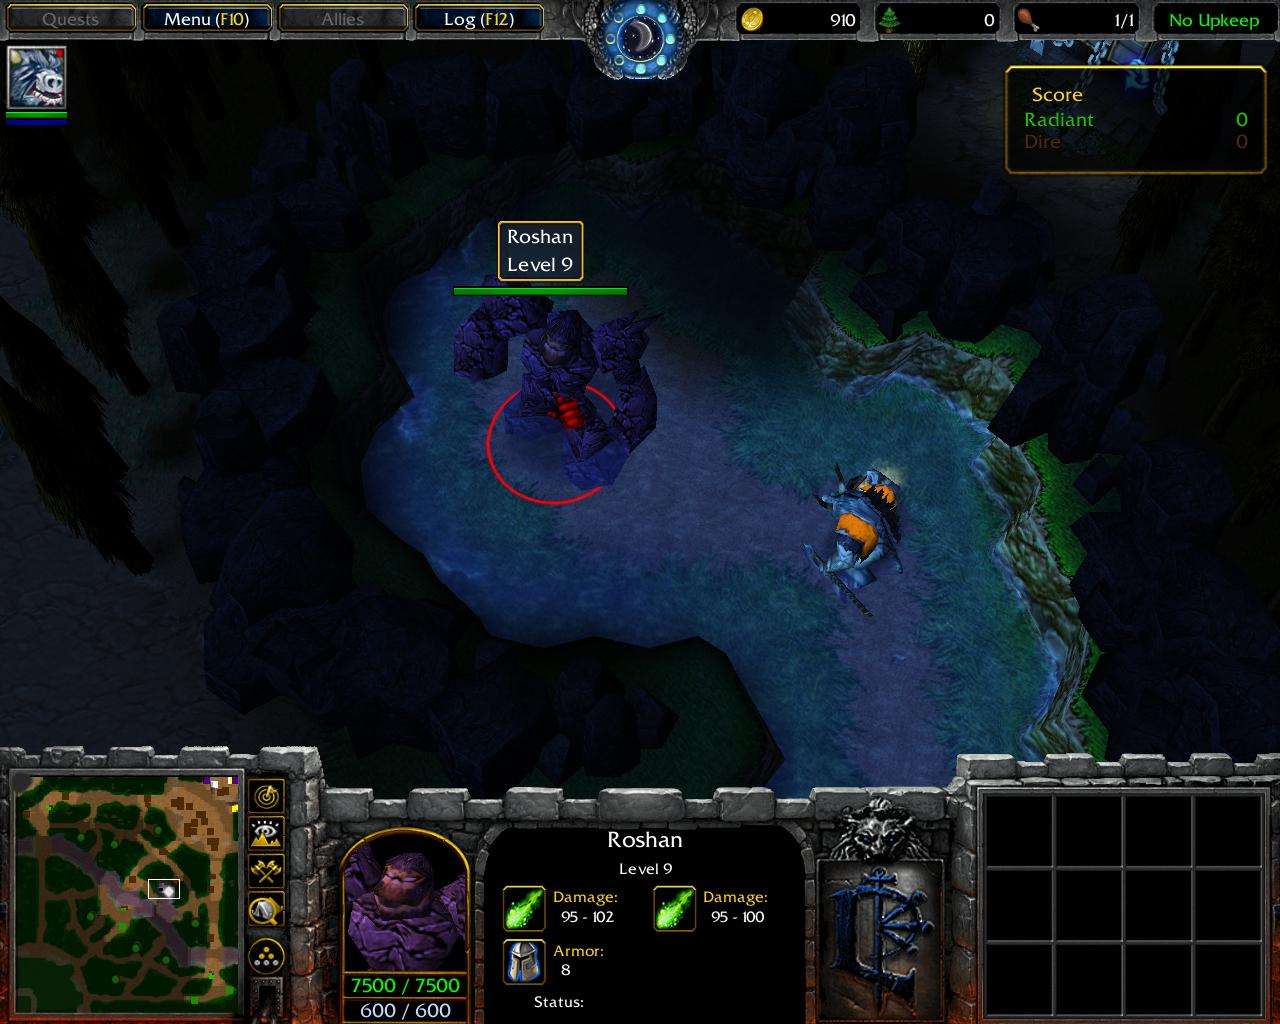 warcraft 3 how to play 24 players